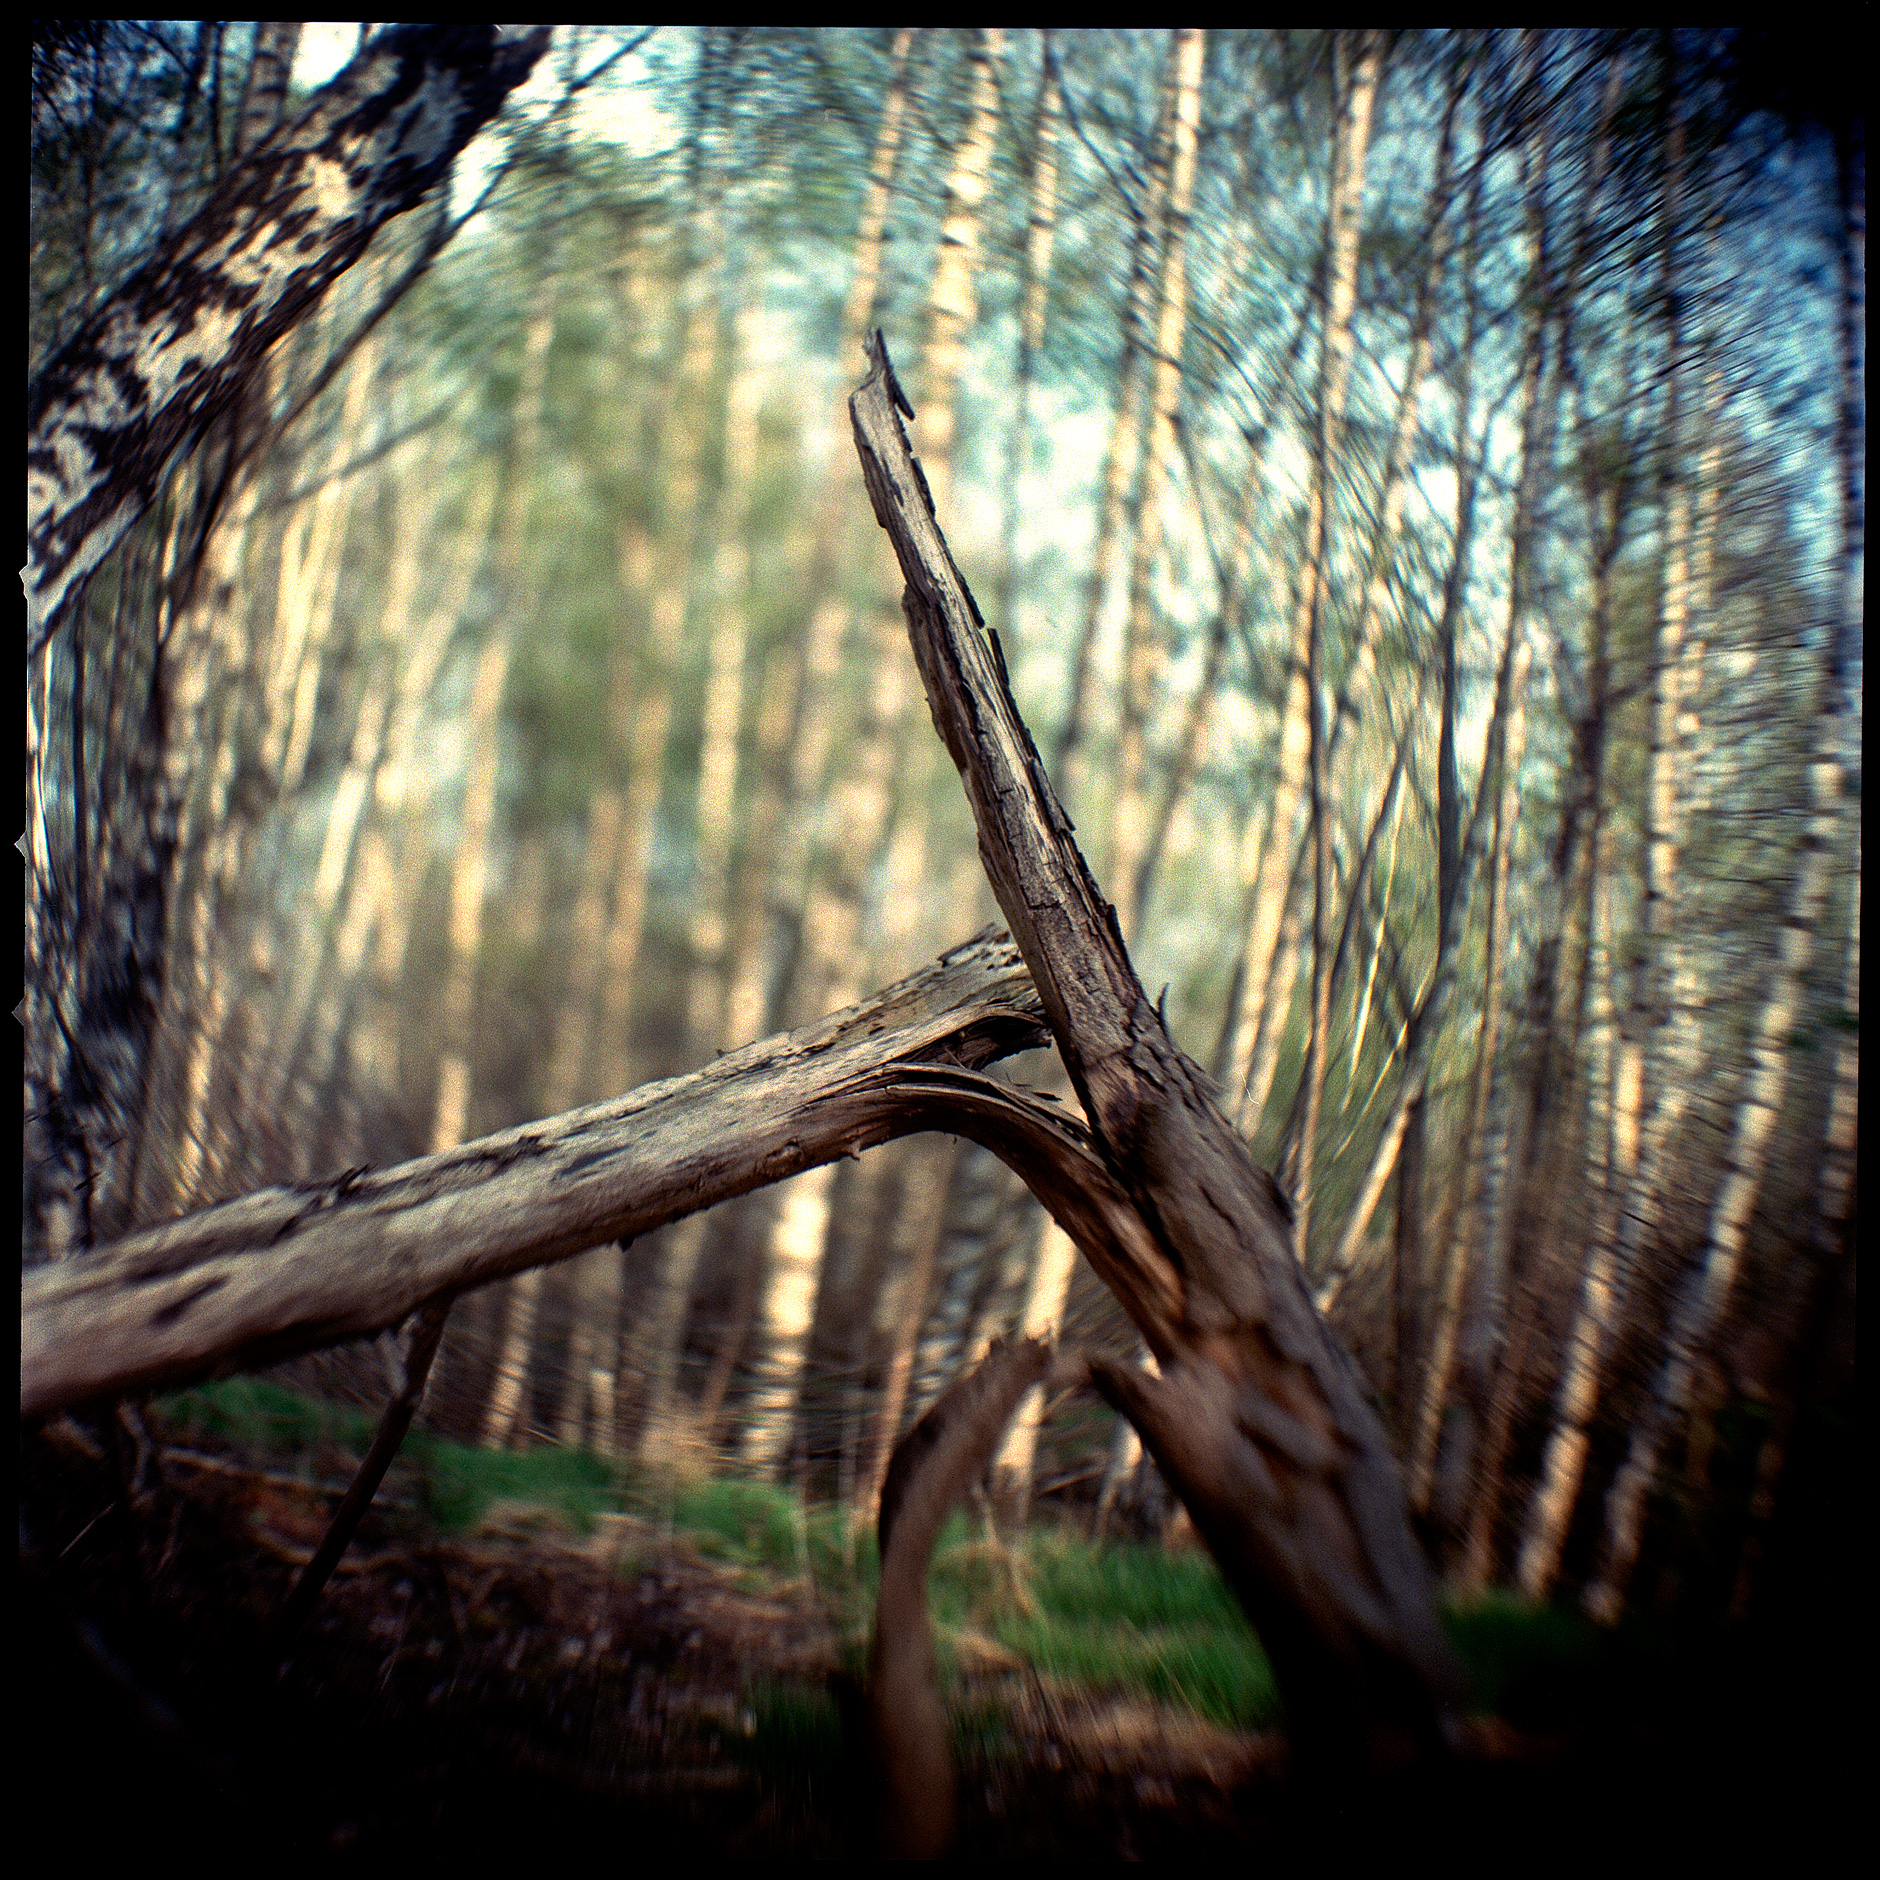 Image shot with Hasselblad 500 camera and a lens modifier